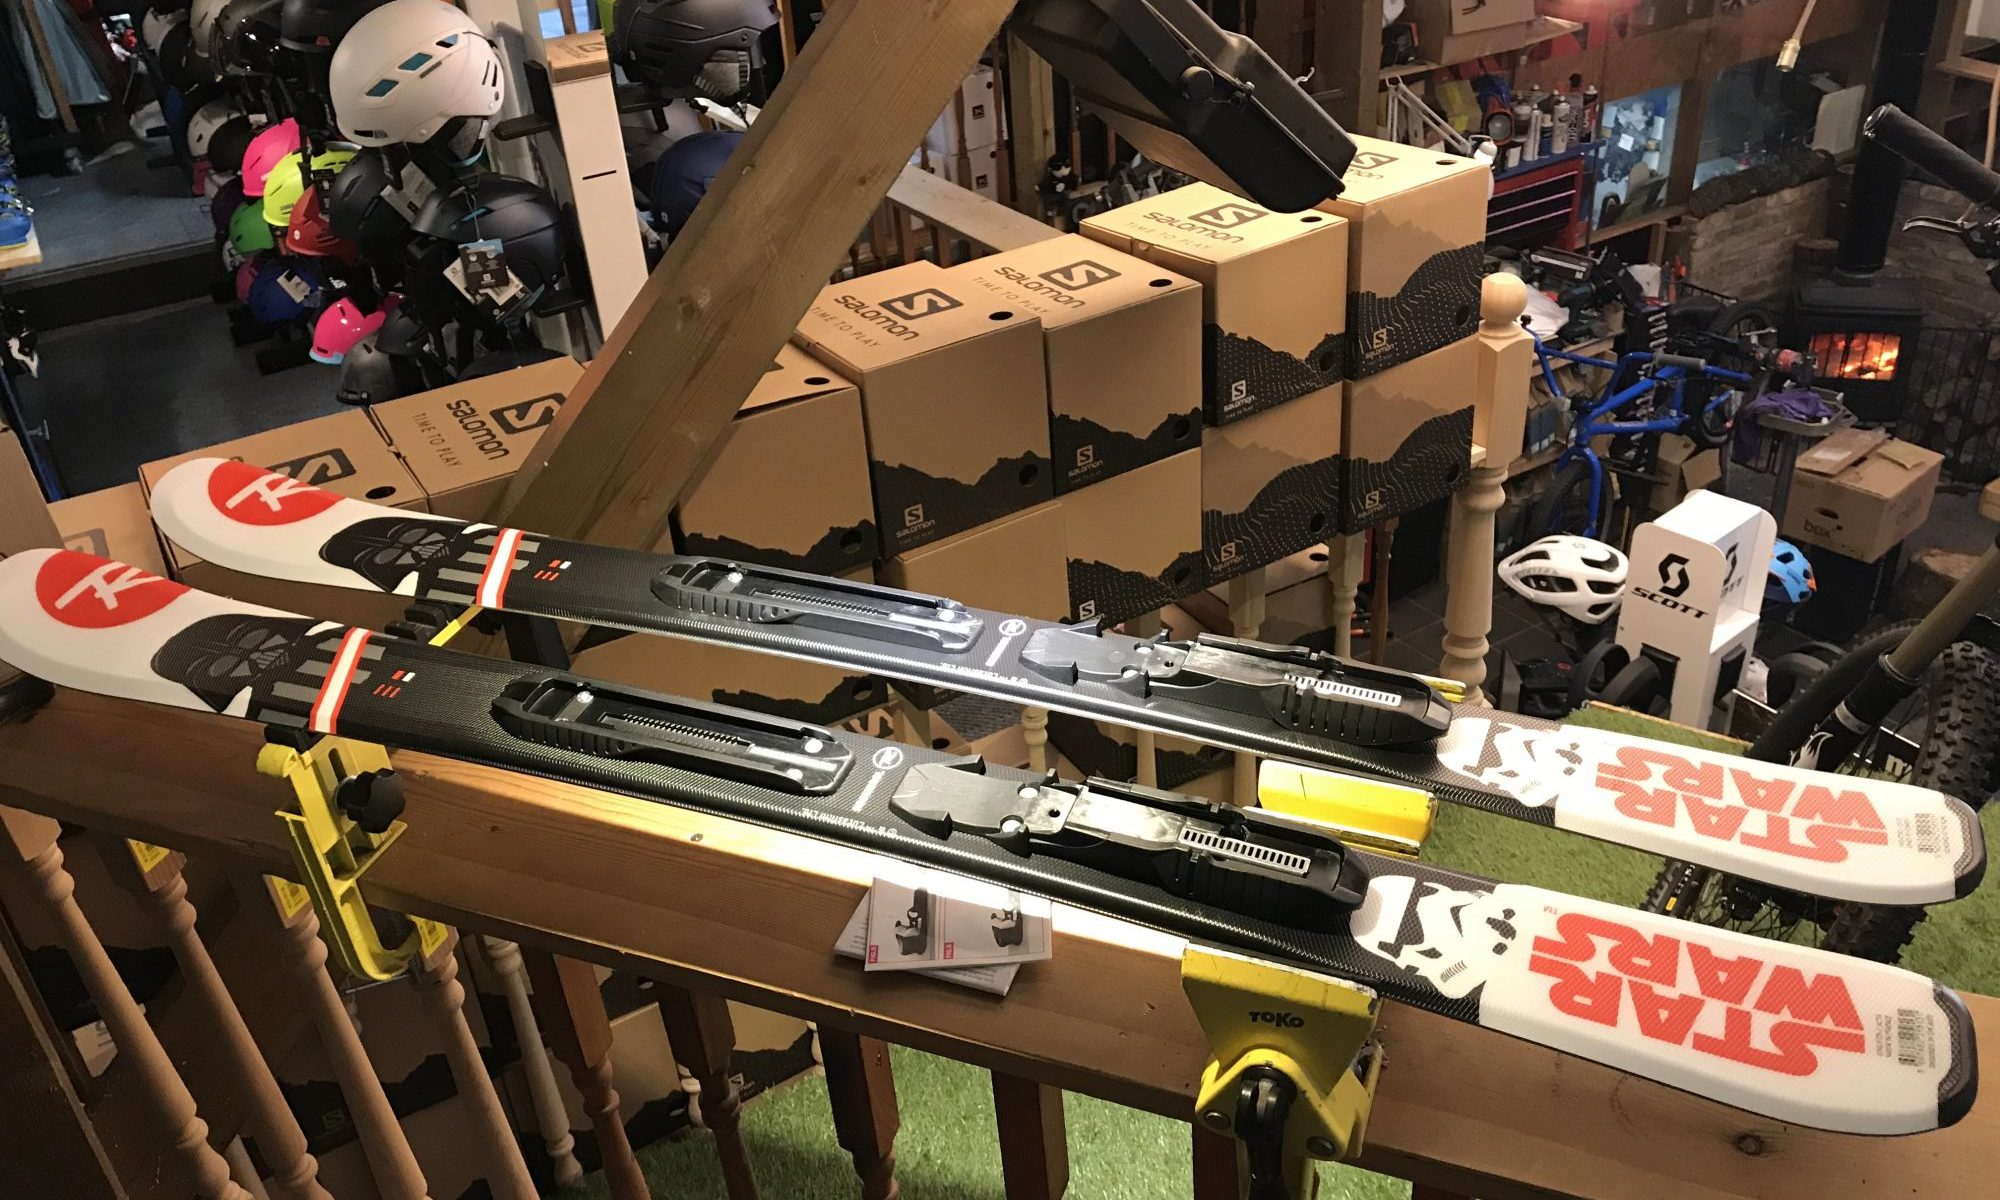 Buying skis for your kids - Finches Emporium - SE London, Forest Hill. Photo by The-Ski-Guru